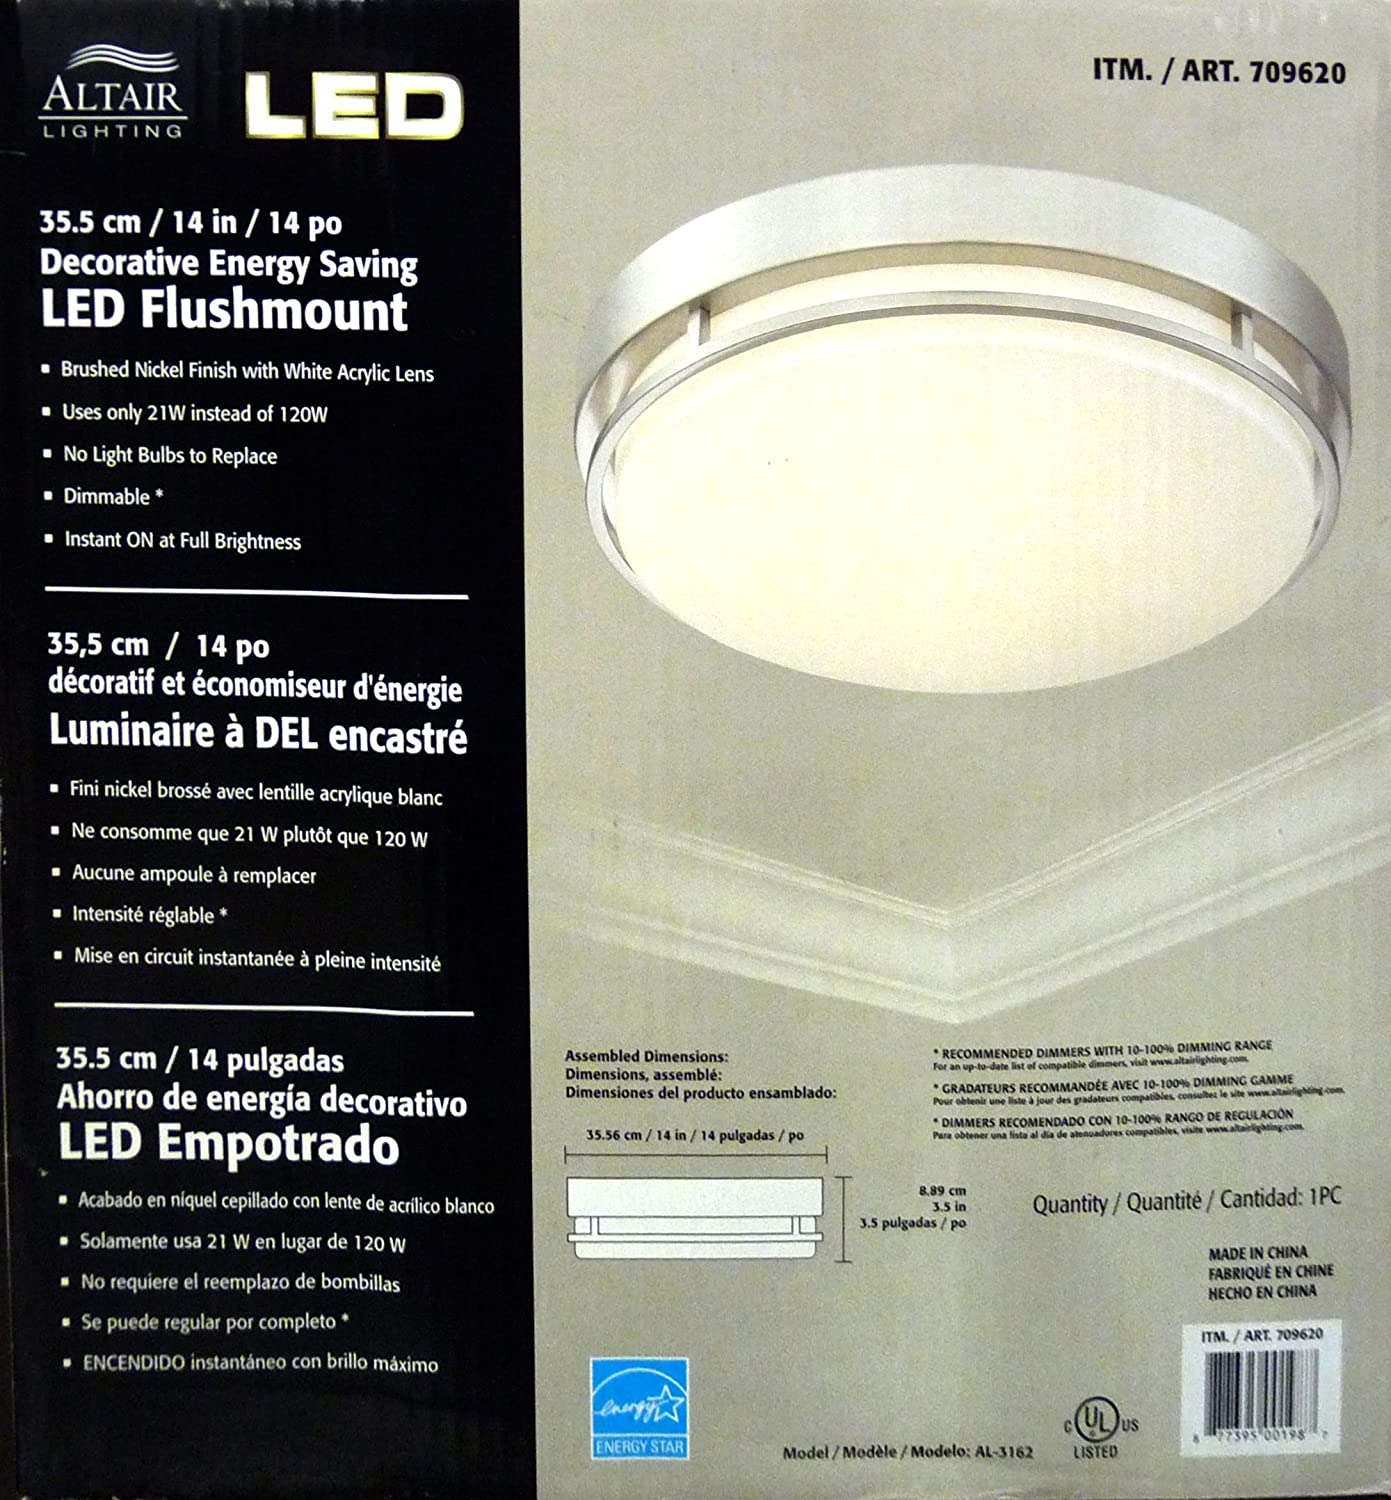 Altair Lighting LED 14-Inch Flush mount Decorative Light Fixture, 21W (120w Equivalent), 3000K, Brushed Nickel Finish - AL-3152 by Altair Lighting ...